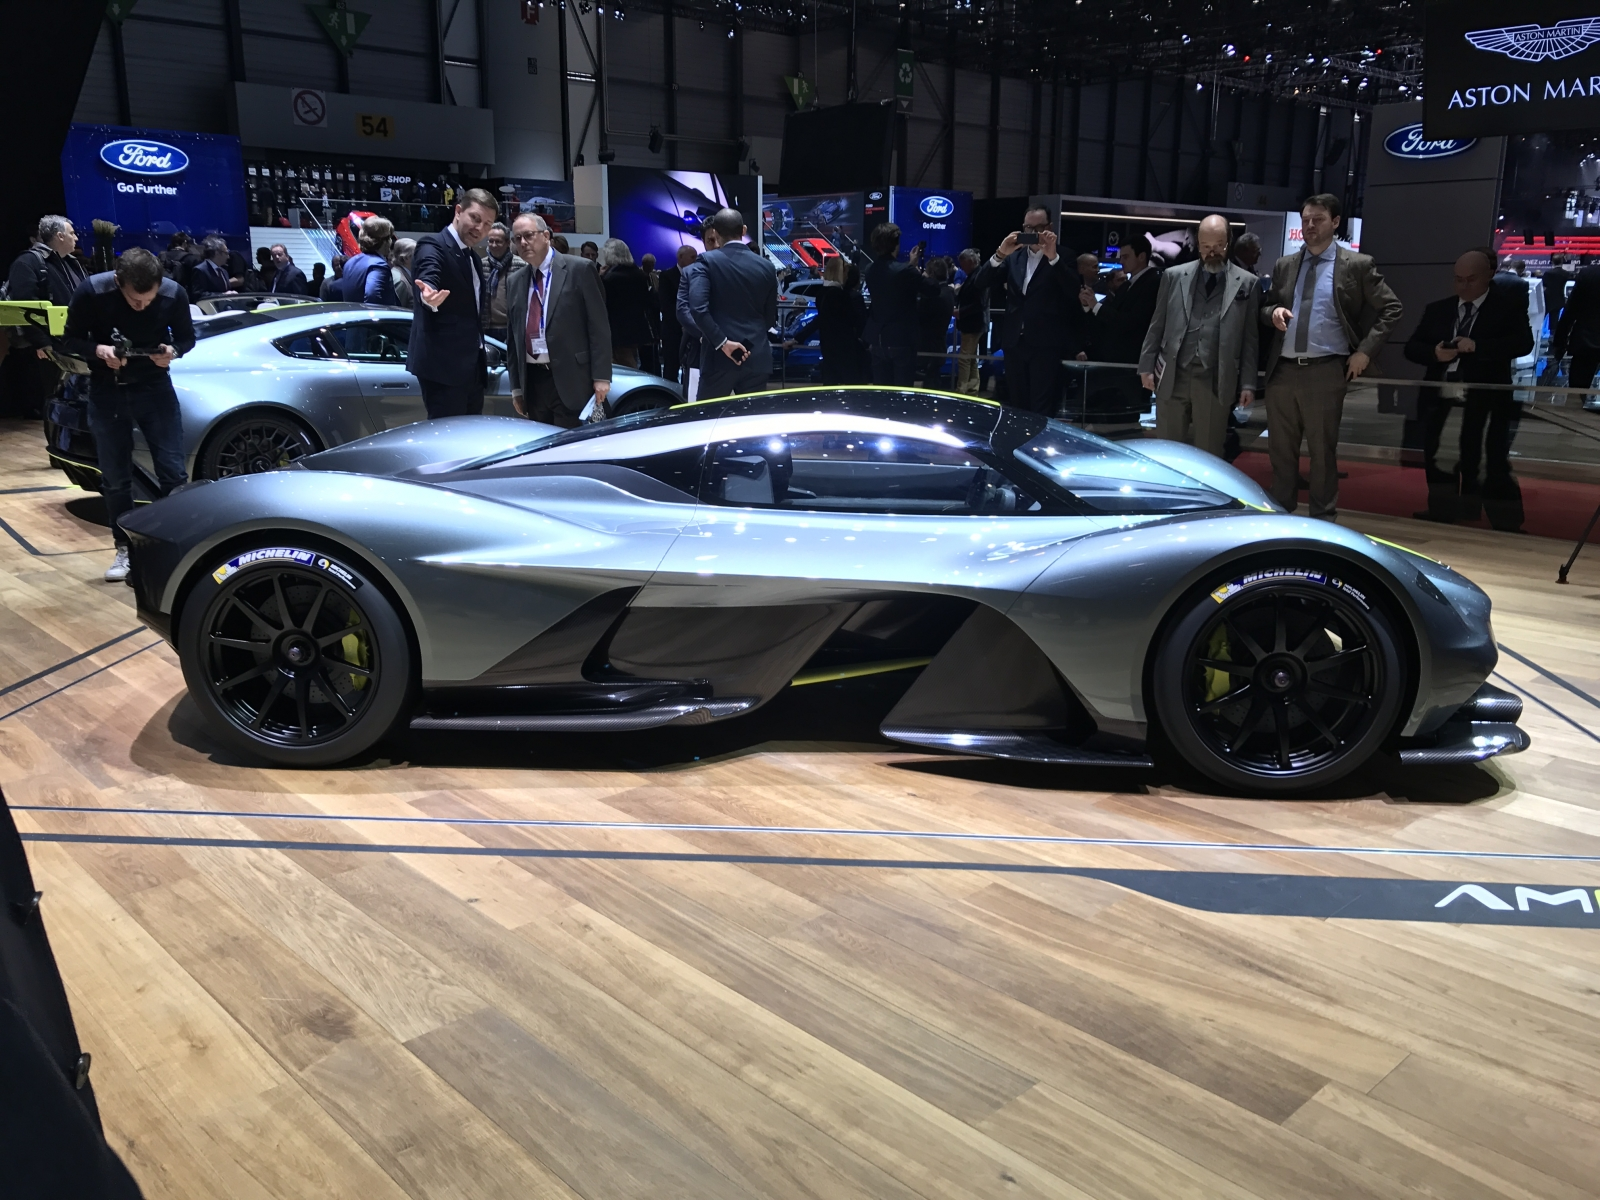 aston martin valkyrie: first look at the jaw-dropping £2m hypercar